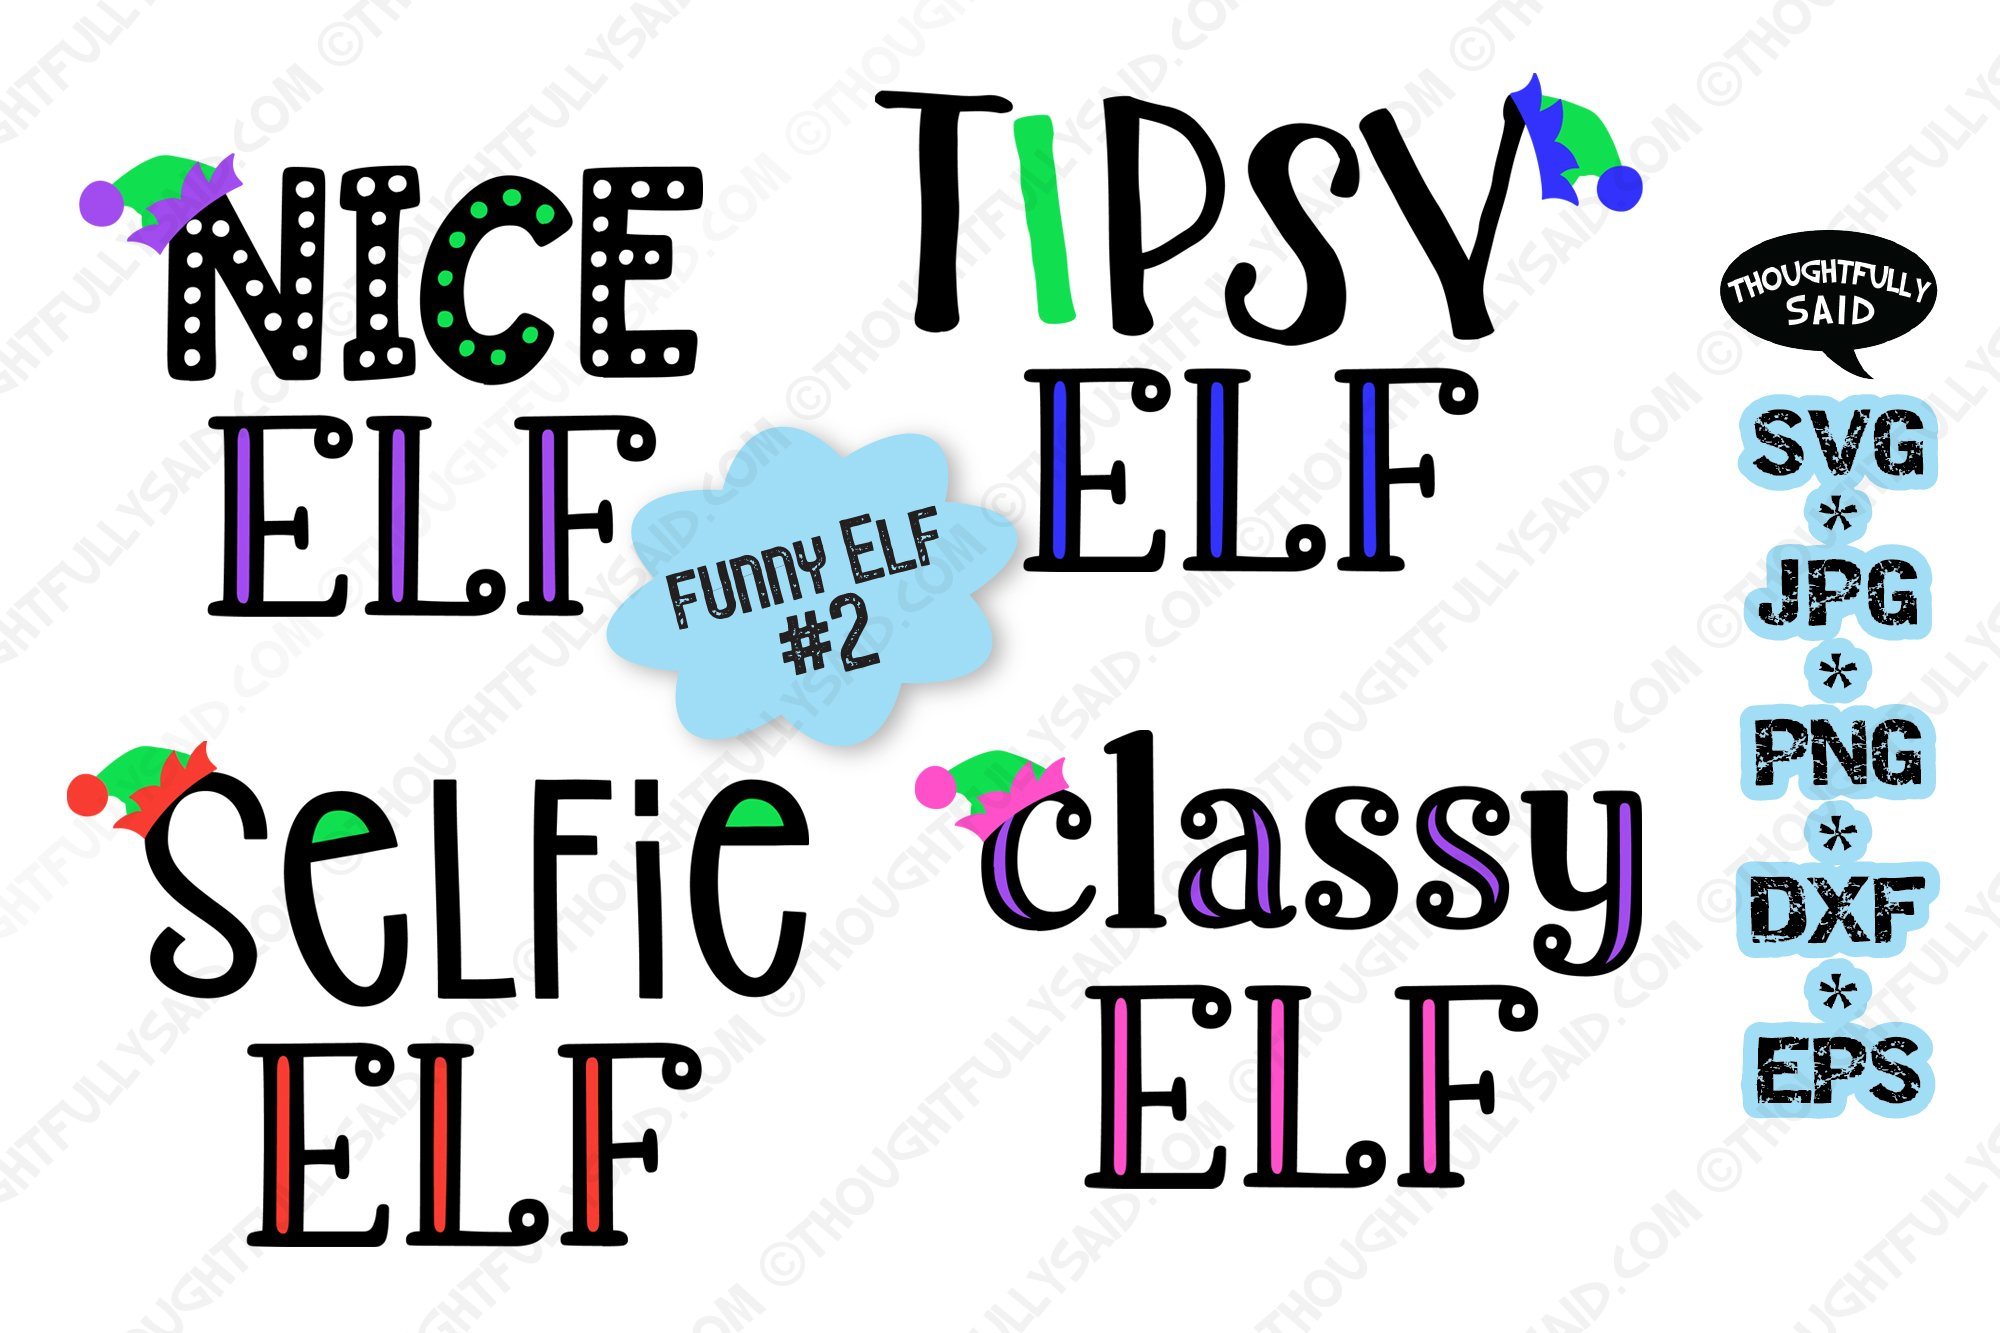 Funny Elf #2, 4 designs, SVG JPG PNG EPS DXF, Christmas example image 1